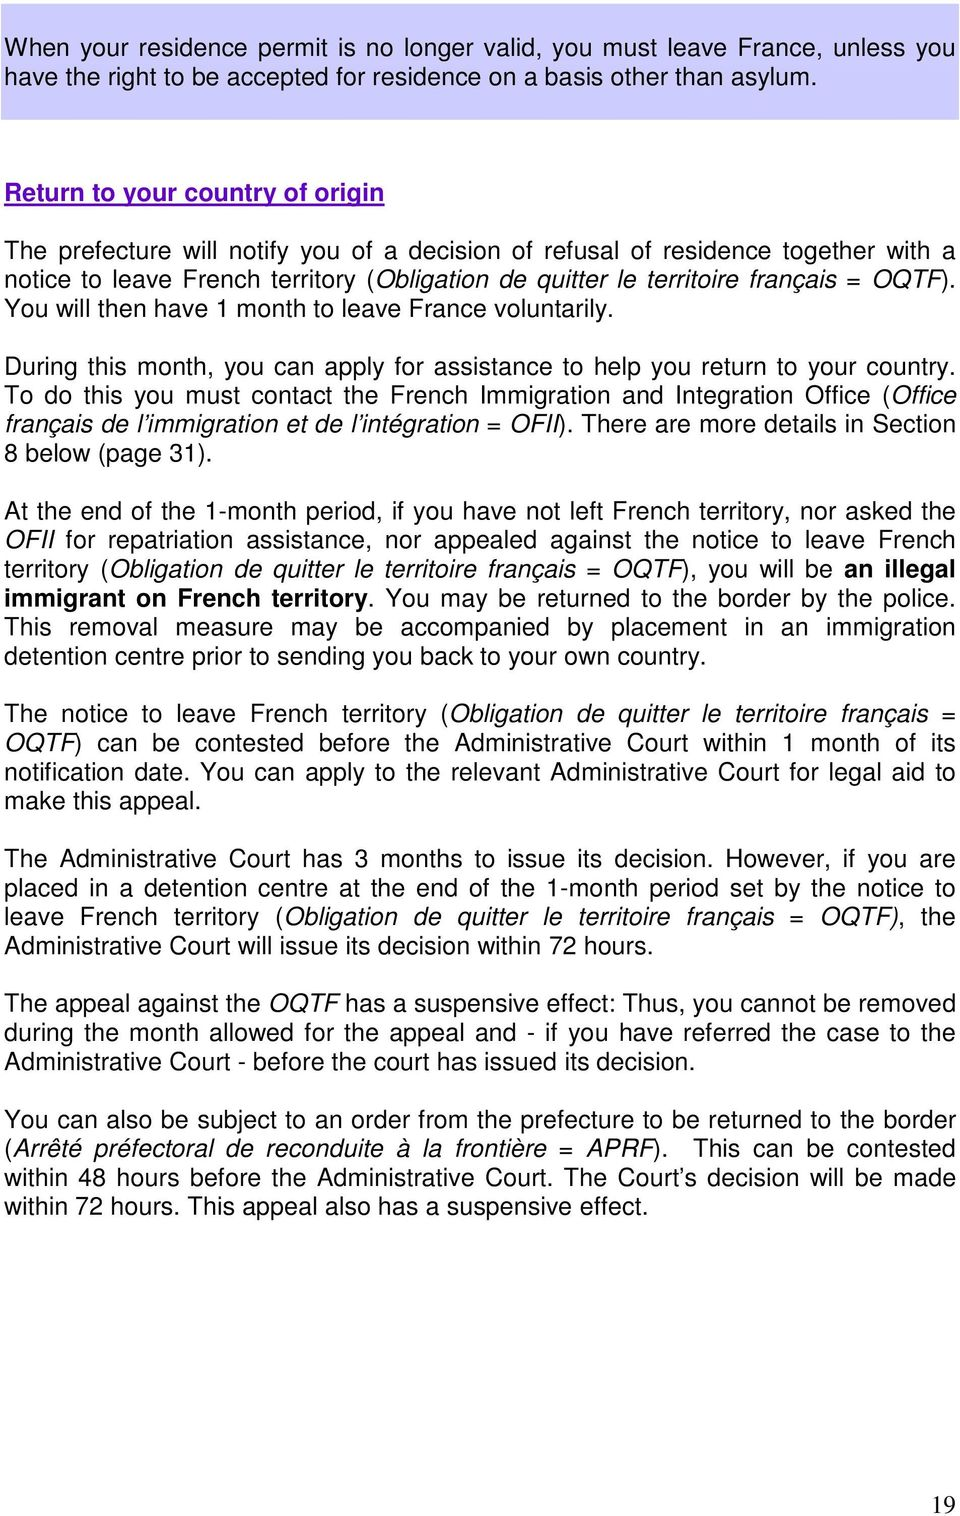 OQTF). You will then have 1 month to leave France voluntarily. During this month, you can apply for assistance to help you return to your country.